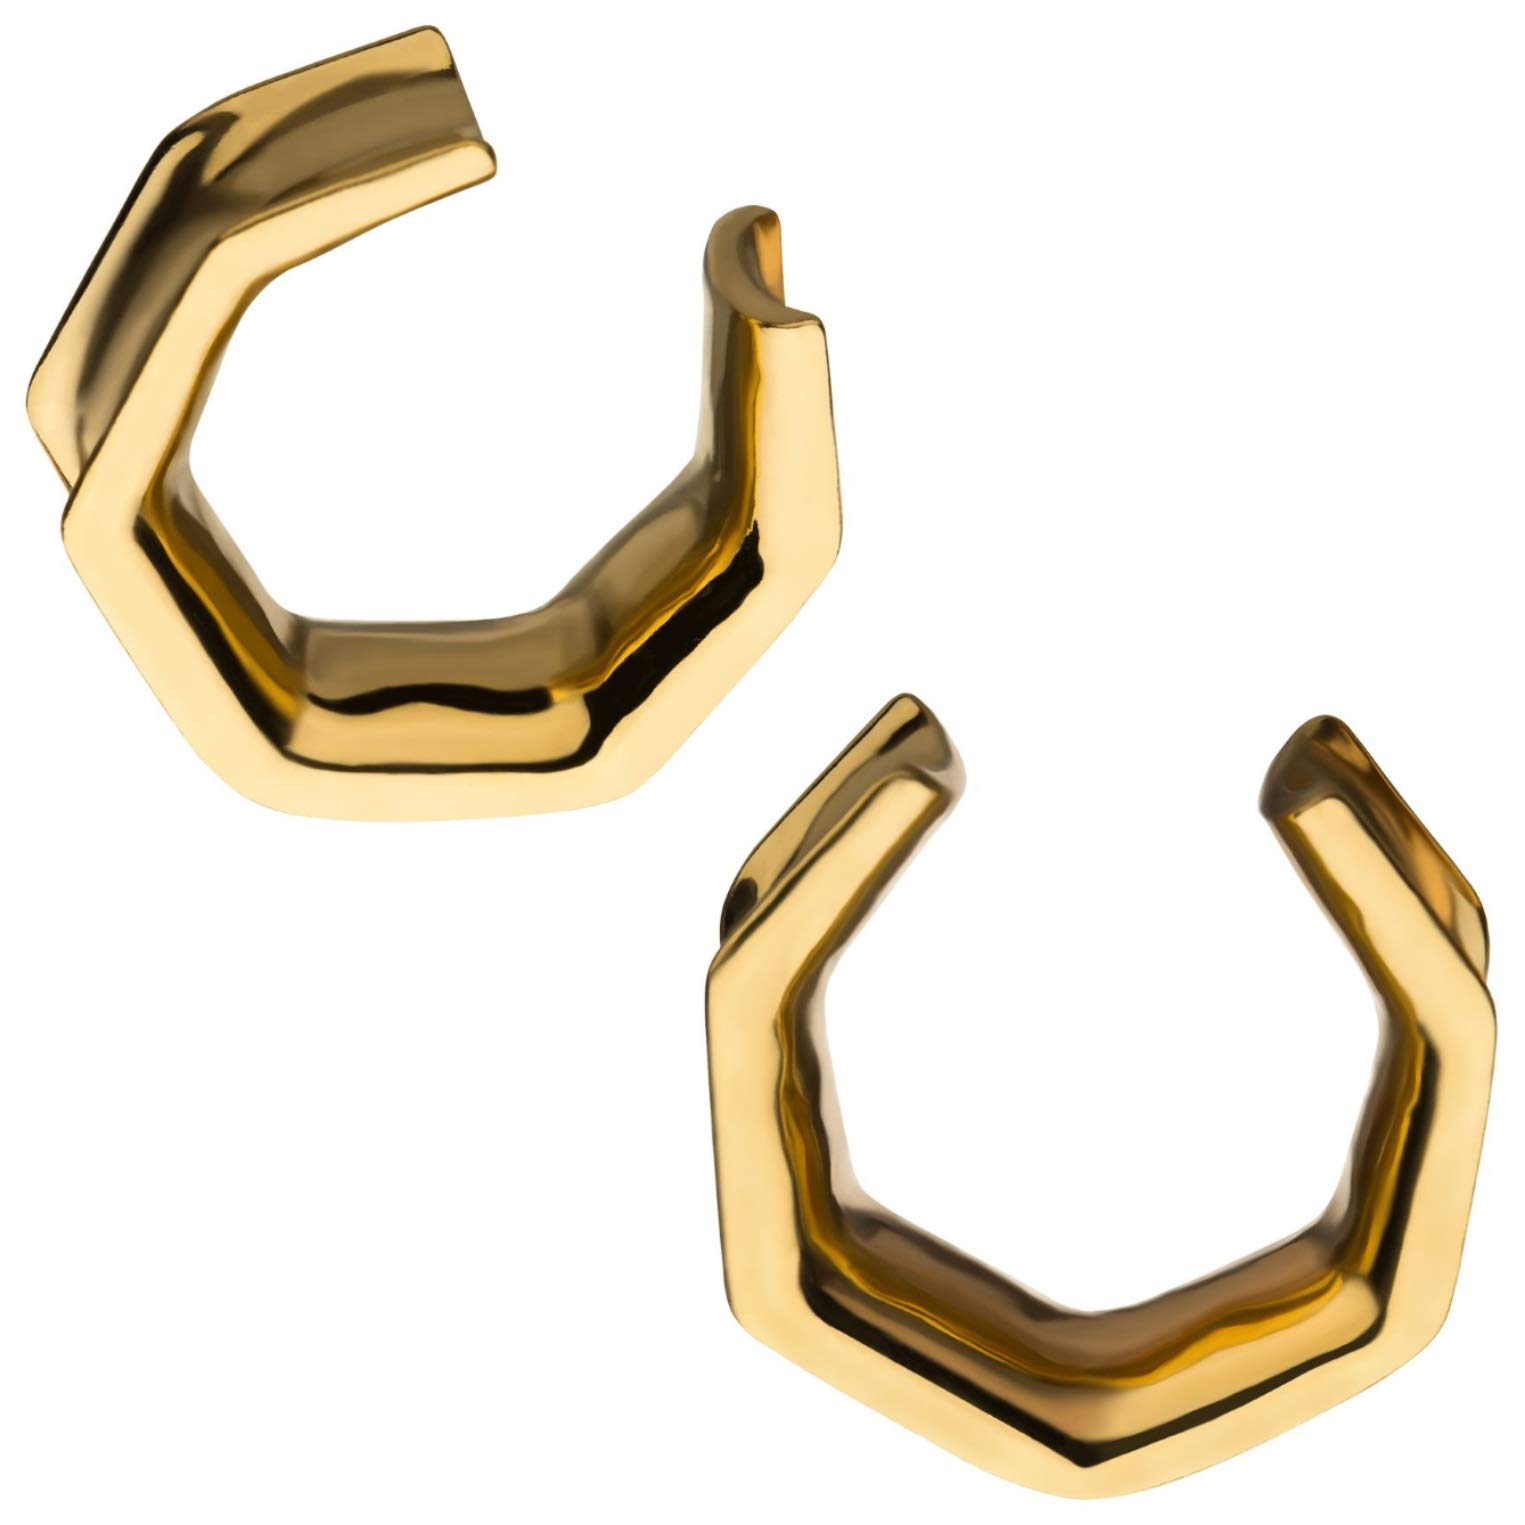 Pair of 0G-19mm Surgical Steel Hexagon Saddle Spreader Plugs (Goldtone 10mm) by BYB Plugs